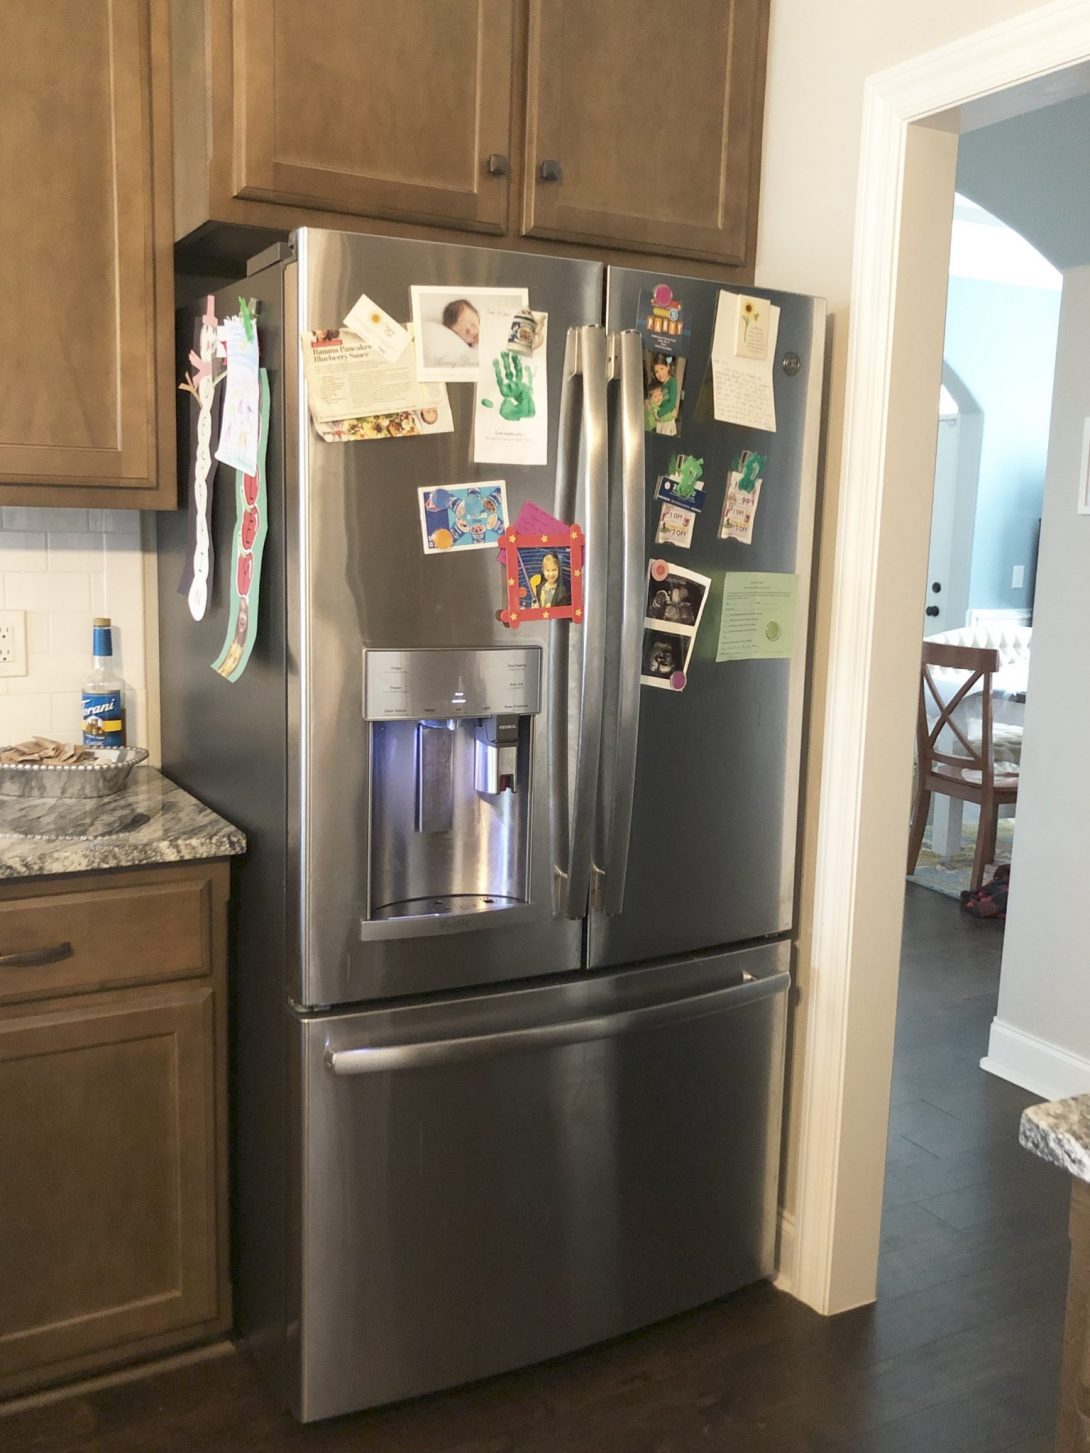 Our Coffee Fridge A Review Of The Ge Profile With Keurig K Cup Brew